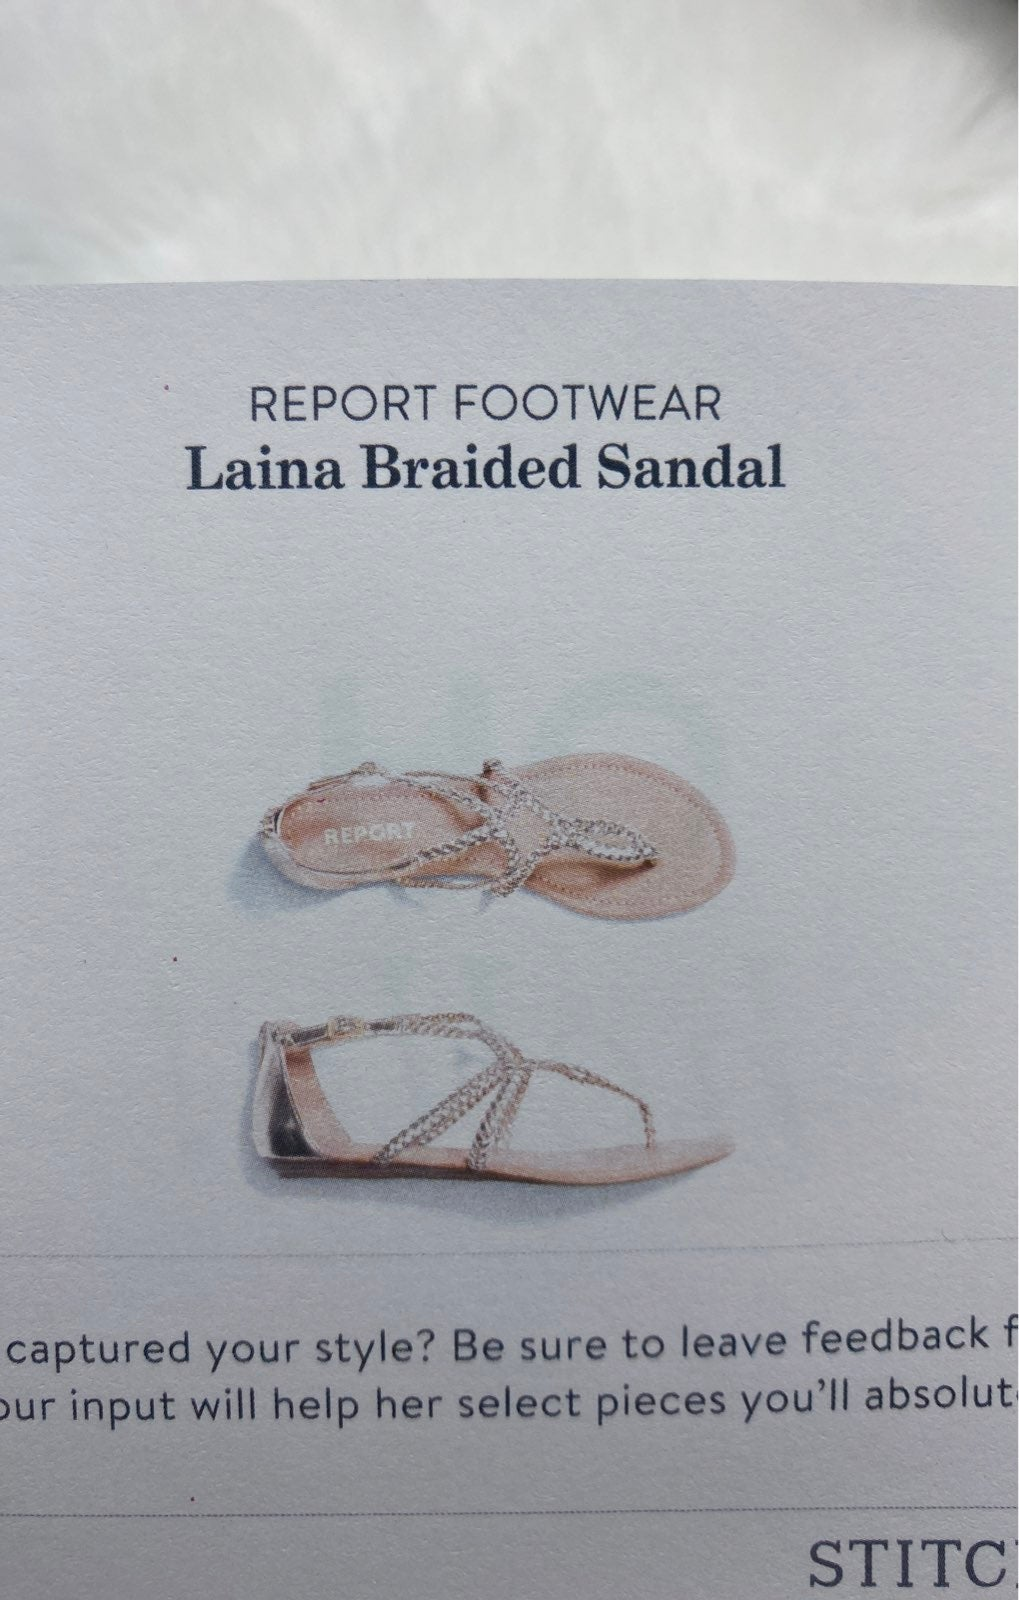 NWT Report Footwear Laina Braided Sandal